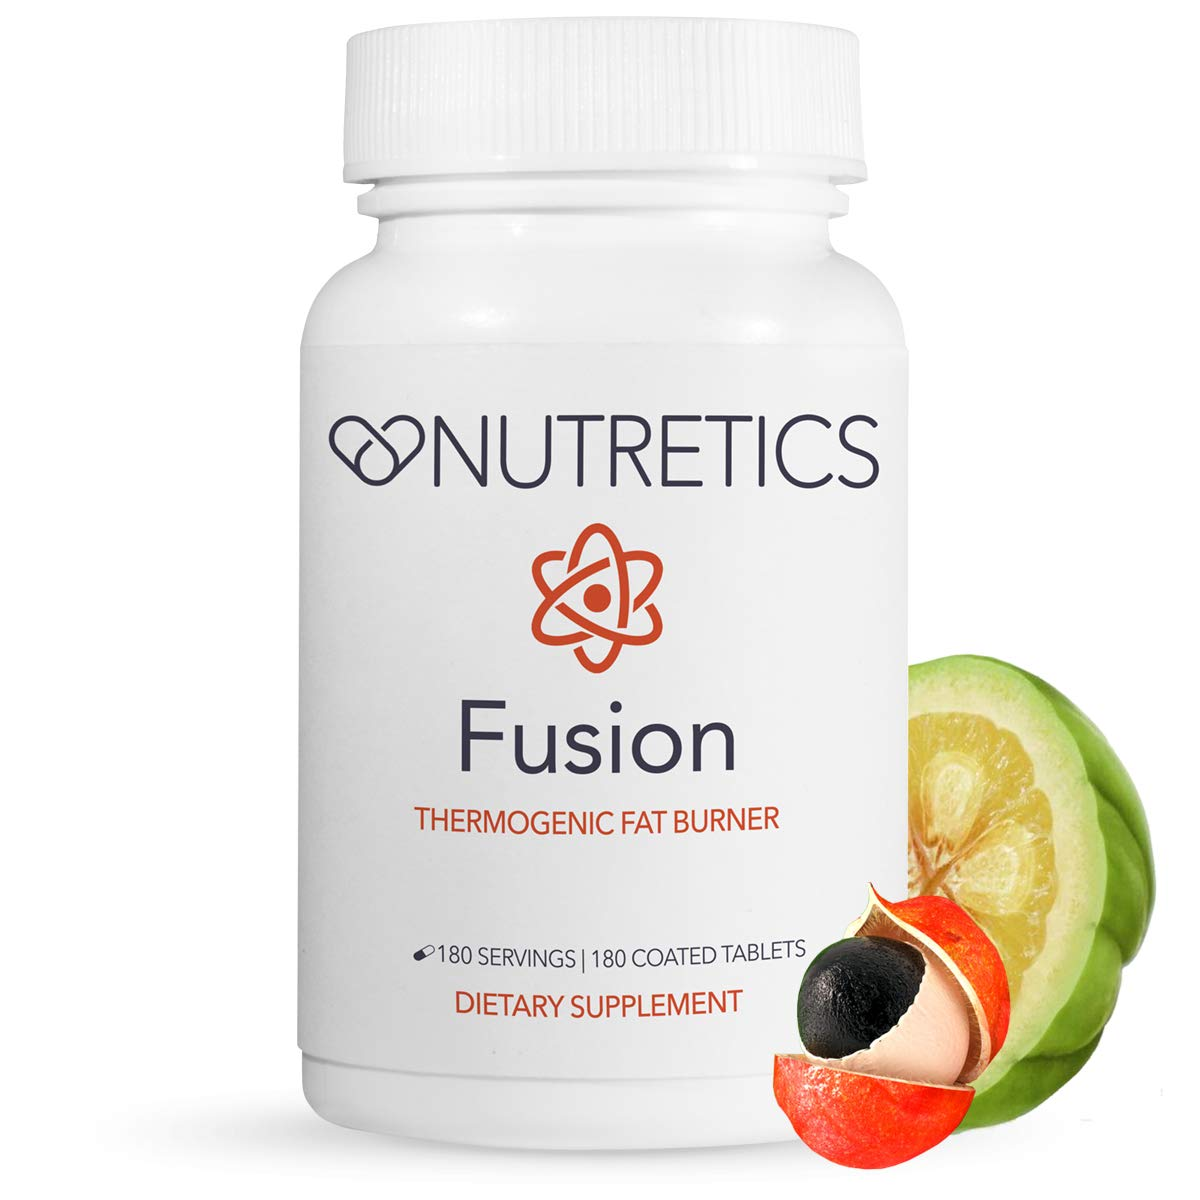 Nutretics Fusion Thermogenic Fat Burner for Men and Women, Weight Loss Supplement/Diet Pills for Fat Burning, Muscle Preservation, Boosted Metabolism, Clean Energy, Appetite Suppressant, 180 Tablets